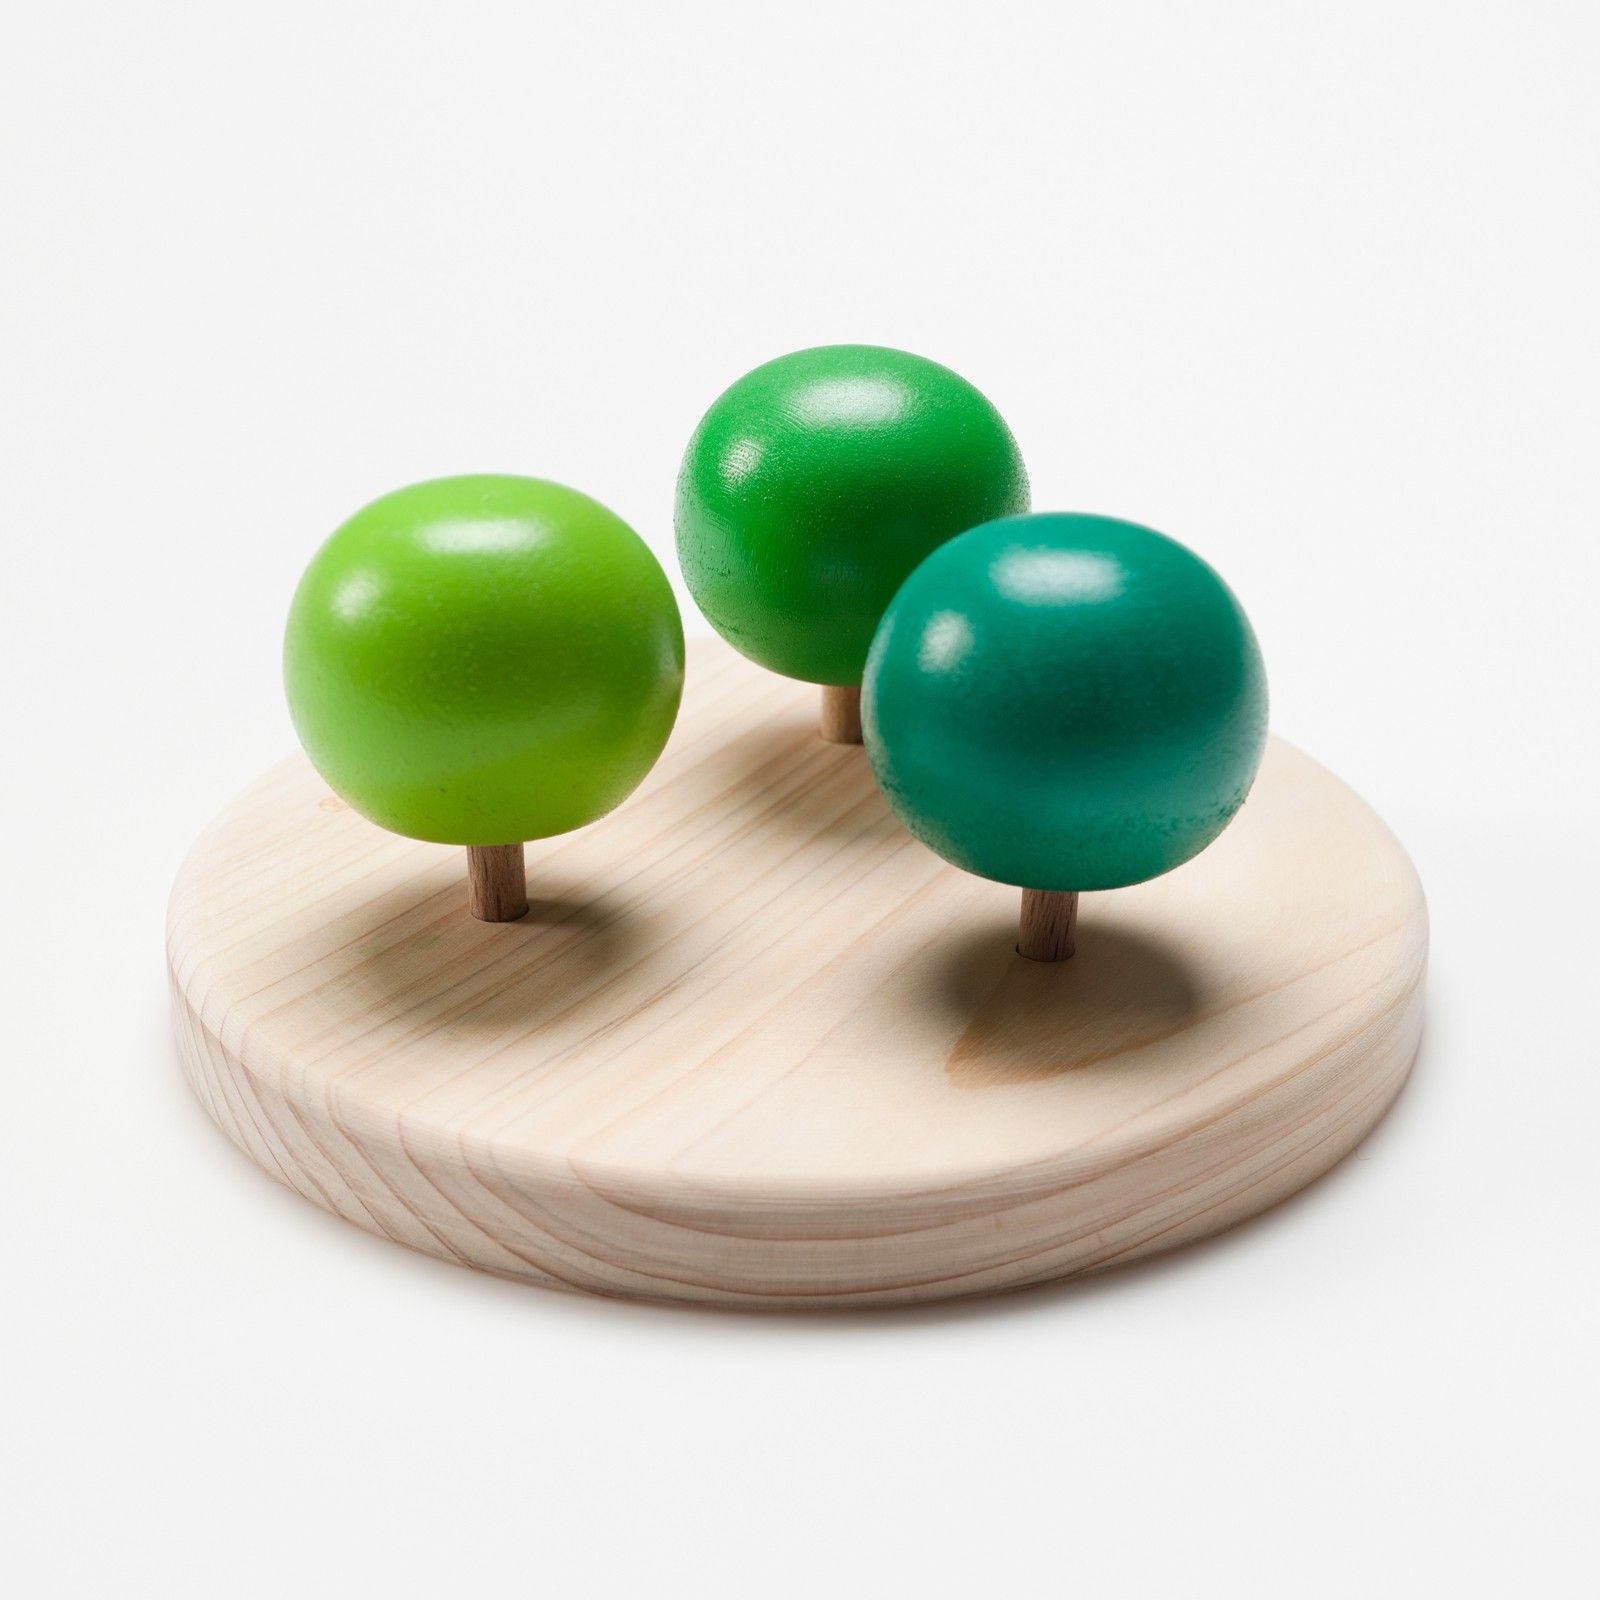 These are spinning tops, just gorgeous.